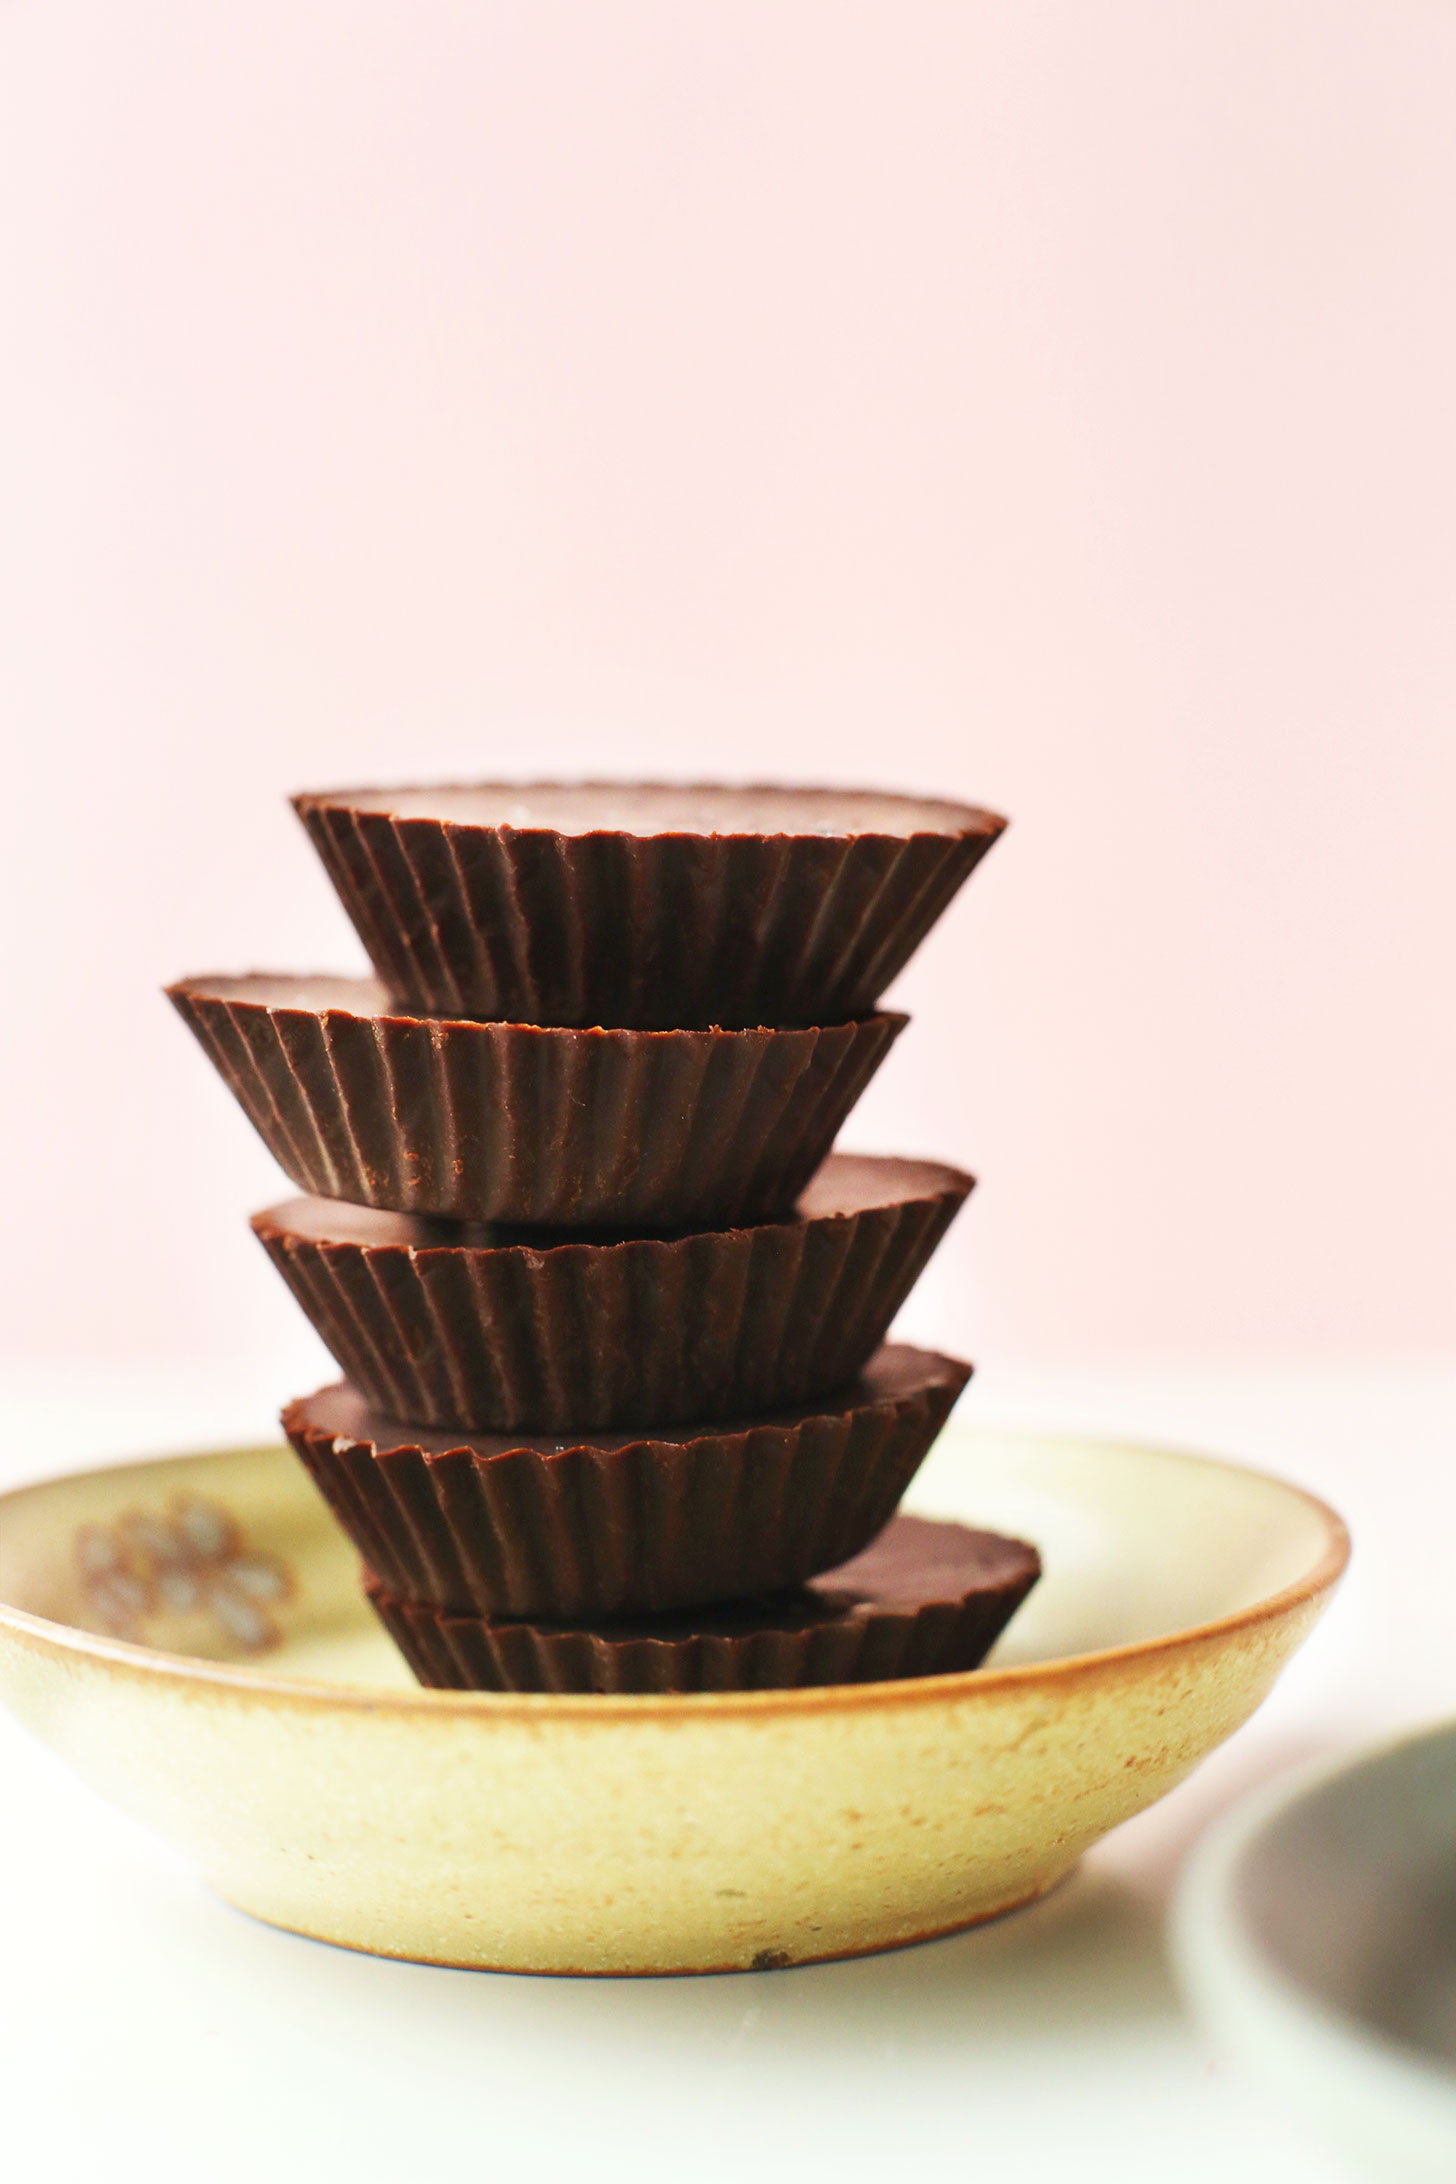 easy-homemade-vegan-chocolate-recipe-simple-ingredients-naturally-sweetened-better-than-storebought-vegan-chocolate-glutenfree-dessert-recipe-easy